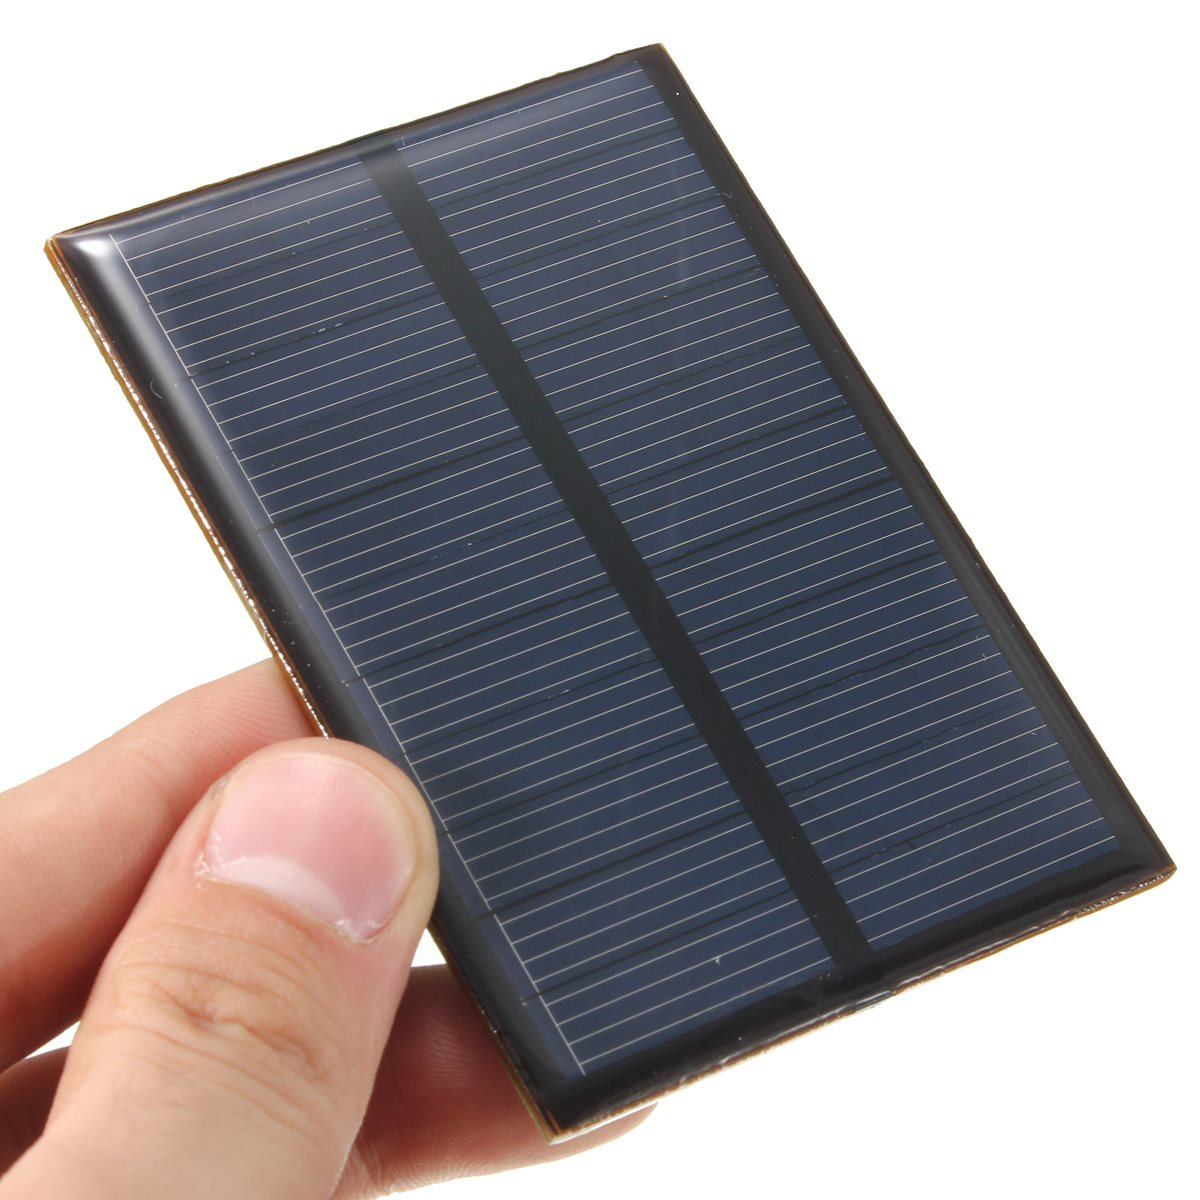 5.5V 0.66W 120mAh DIY Monocrystalline Silicon Epoxy Universal Solar Panel Module Solar Cells Battery Batteries Phone Charger Pro(China (Mainland))